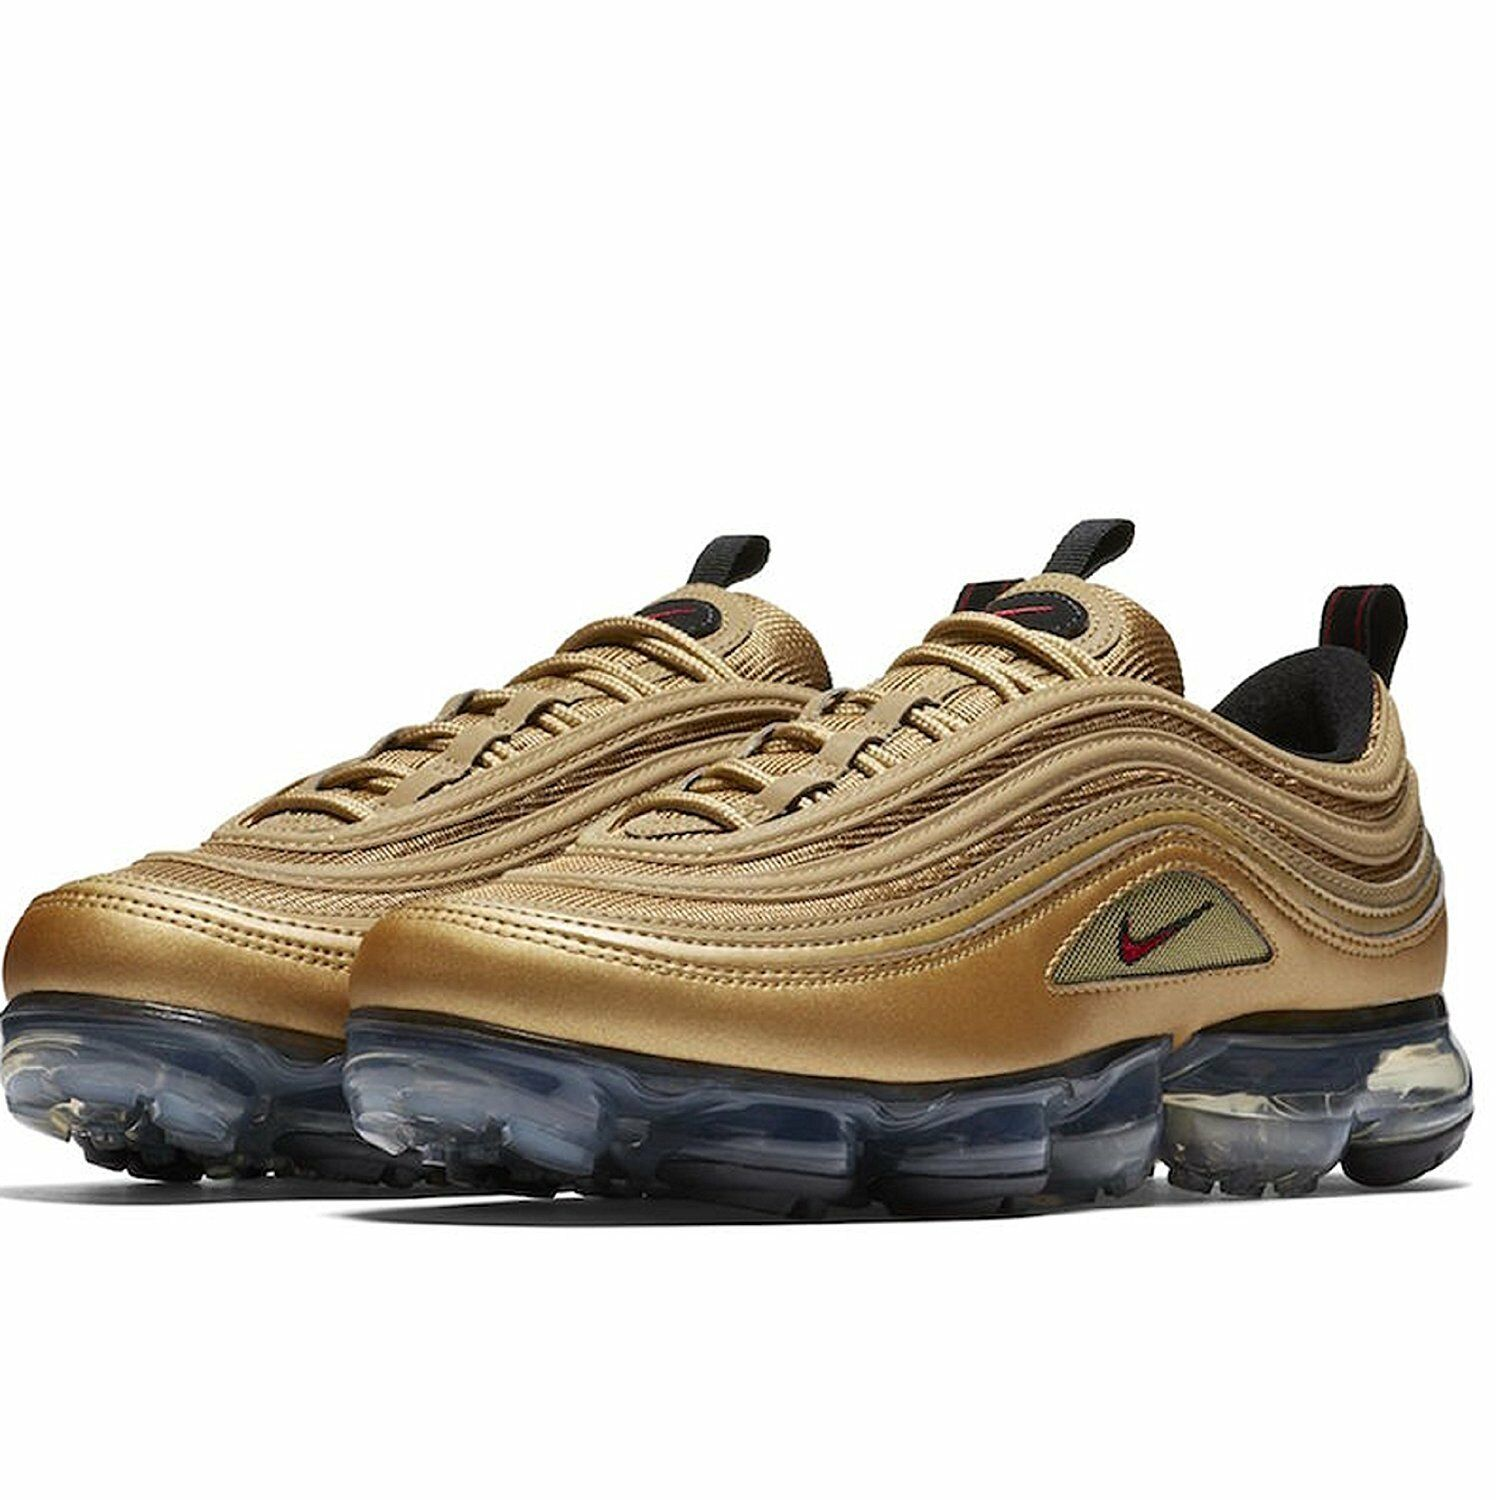 nike air vapormax '97 metallisches gold 700) / uni rot (aj7291 700) gold f70137